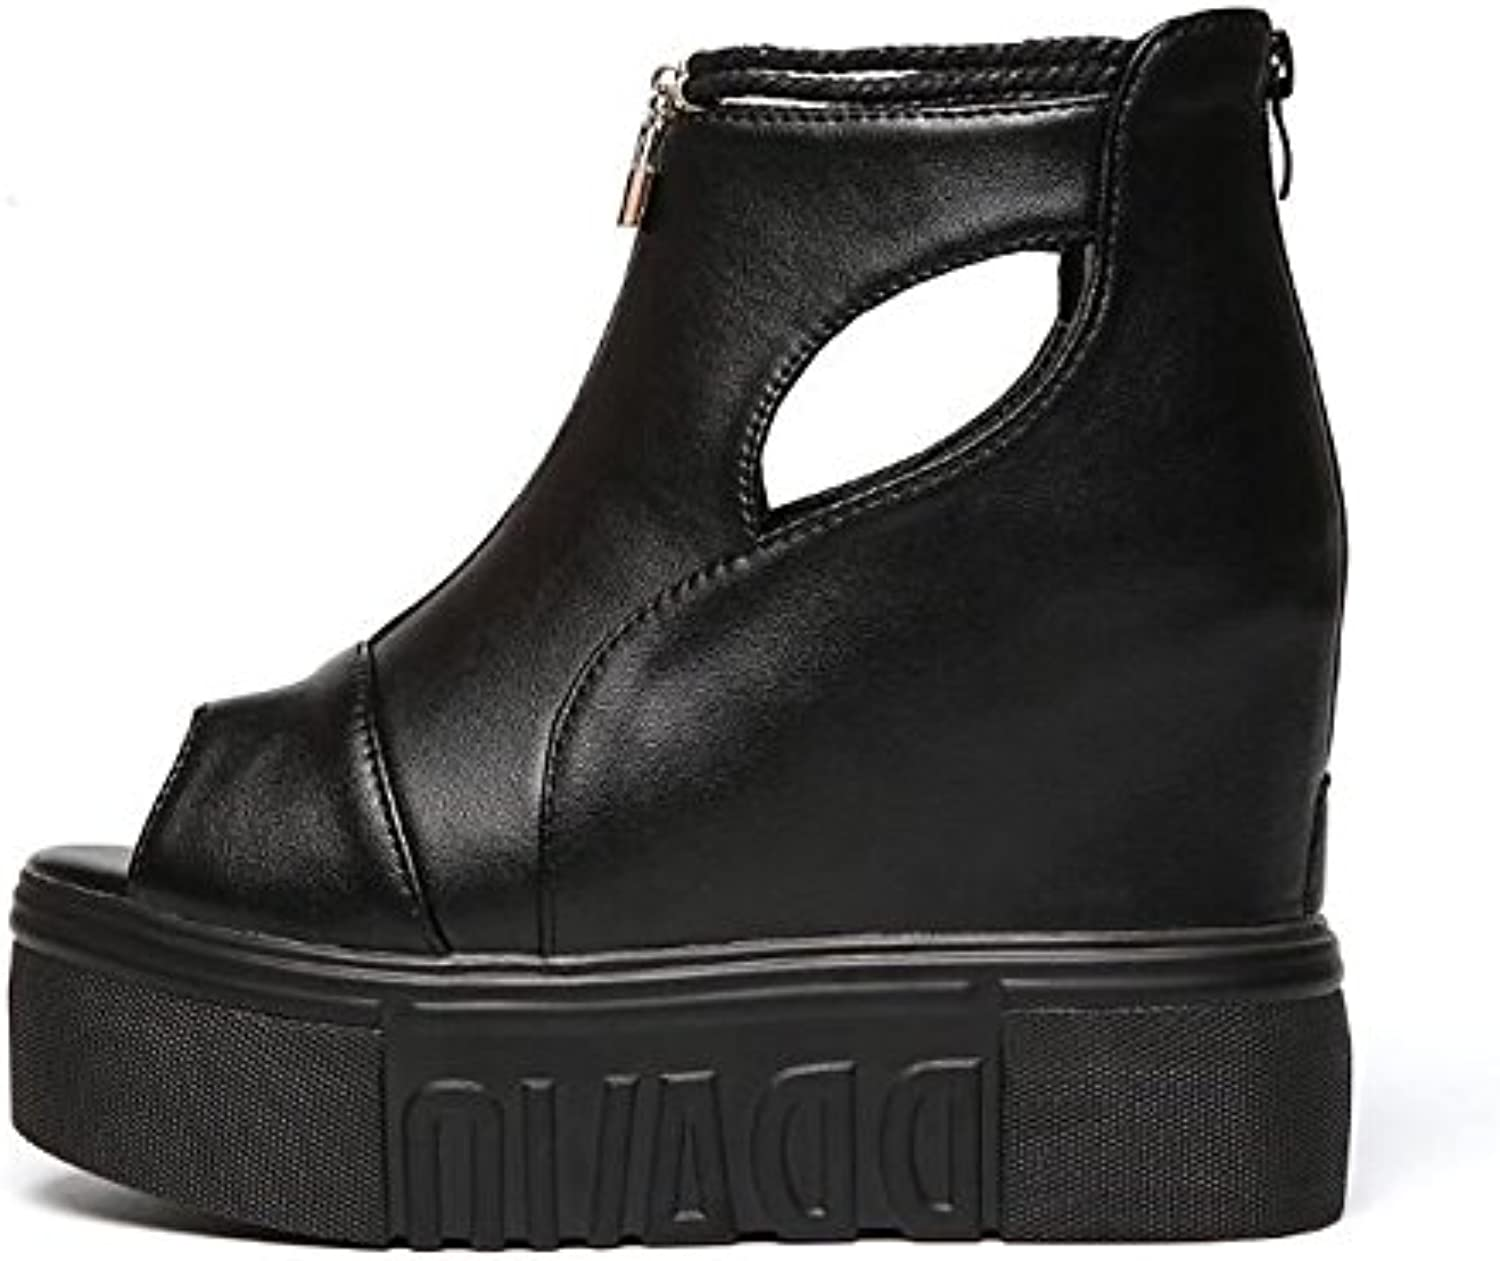 HSXZ Women's shoes PU Spring Fall Comfort Boots Creepers Booties Ankle Boots for Casual Black